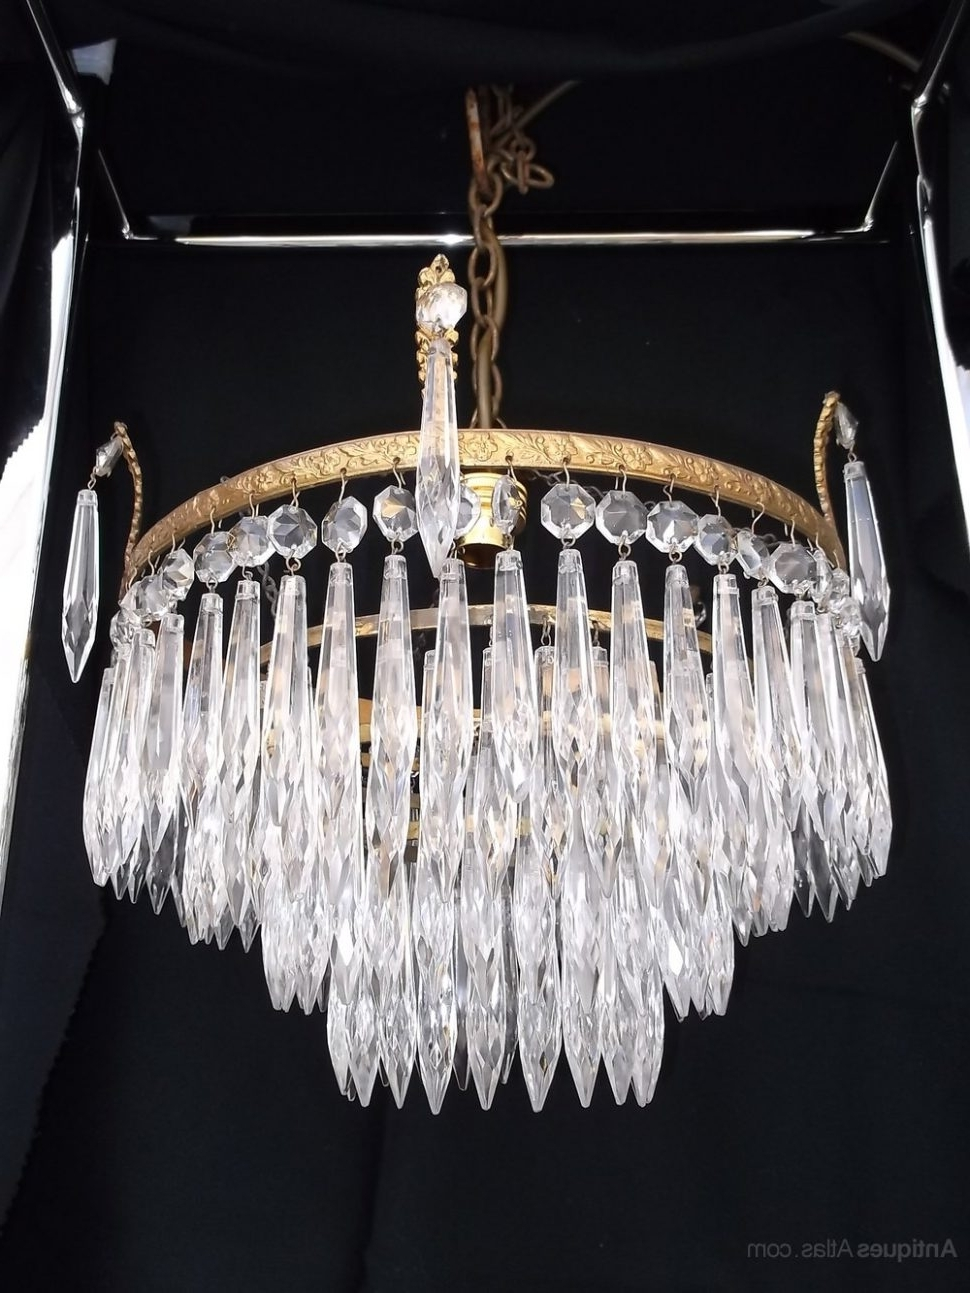 Waterfall Chandeliers With Regard To Well Known Chandeliers Design : Awesome Antique Crystal Chandelier Chandeliers (View 12 of 20)